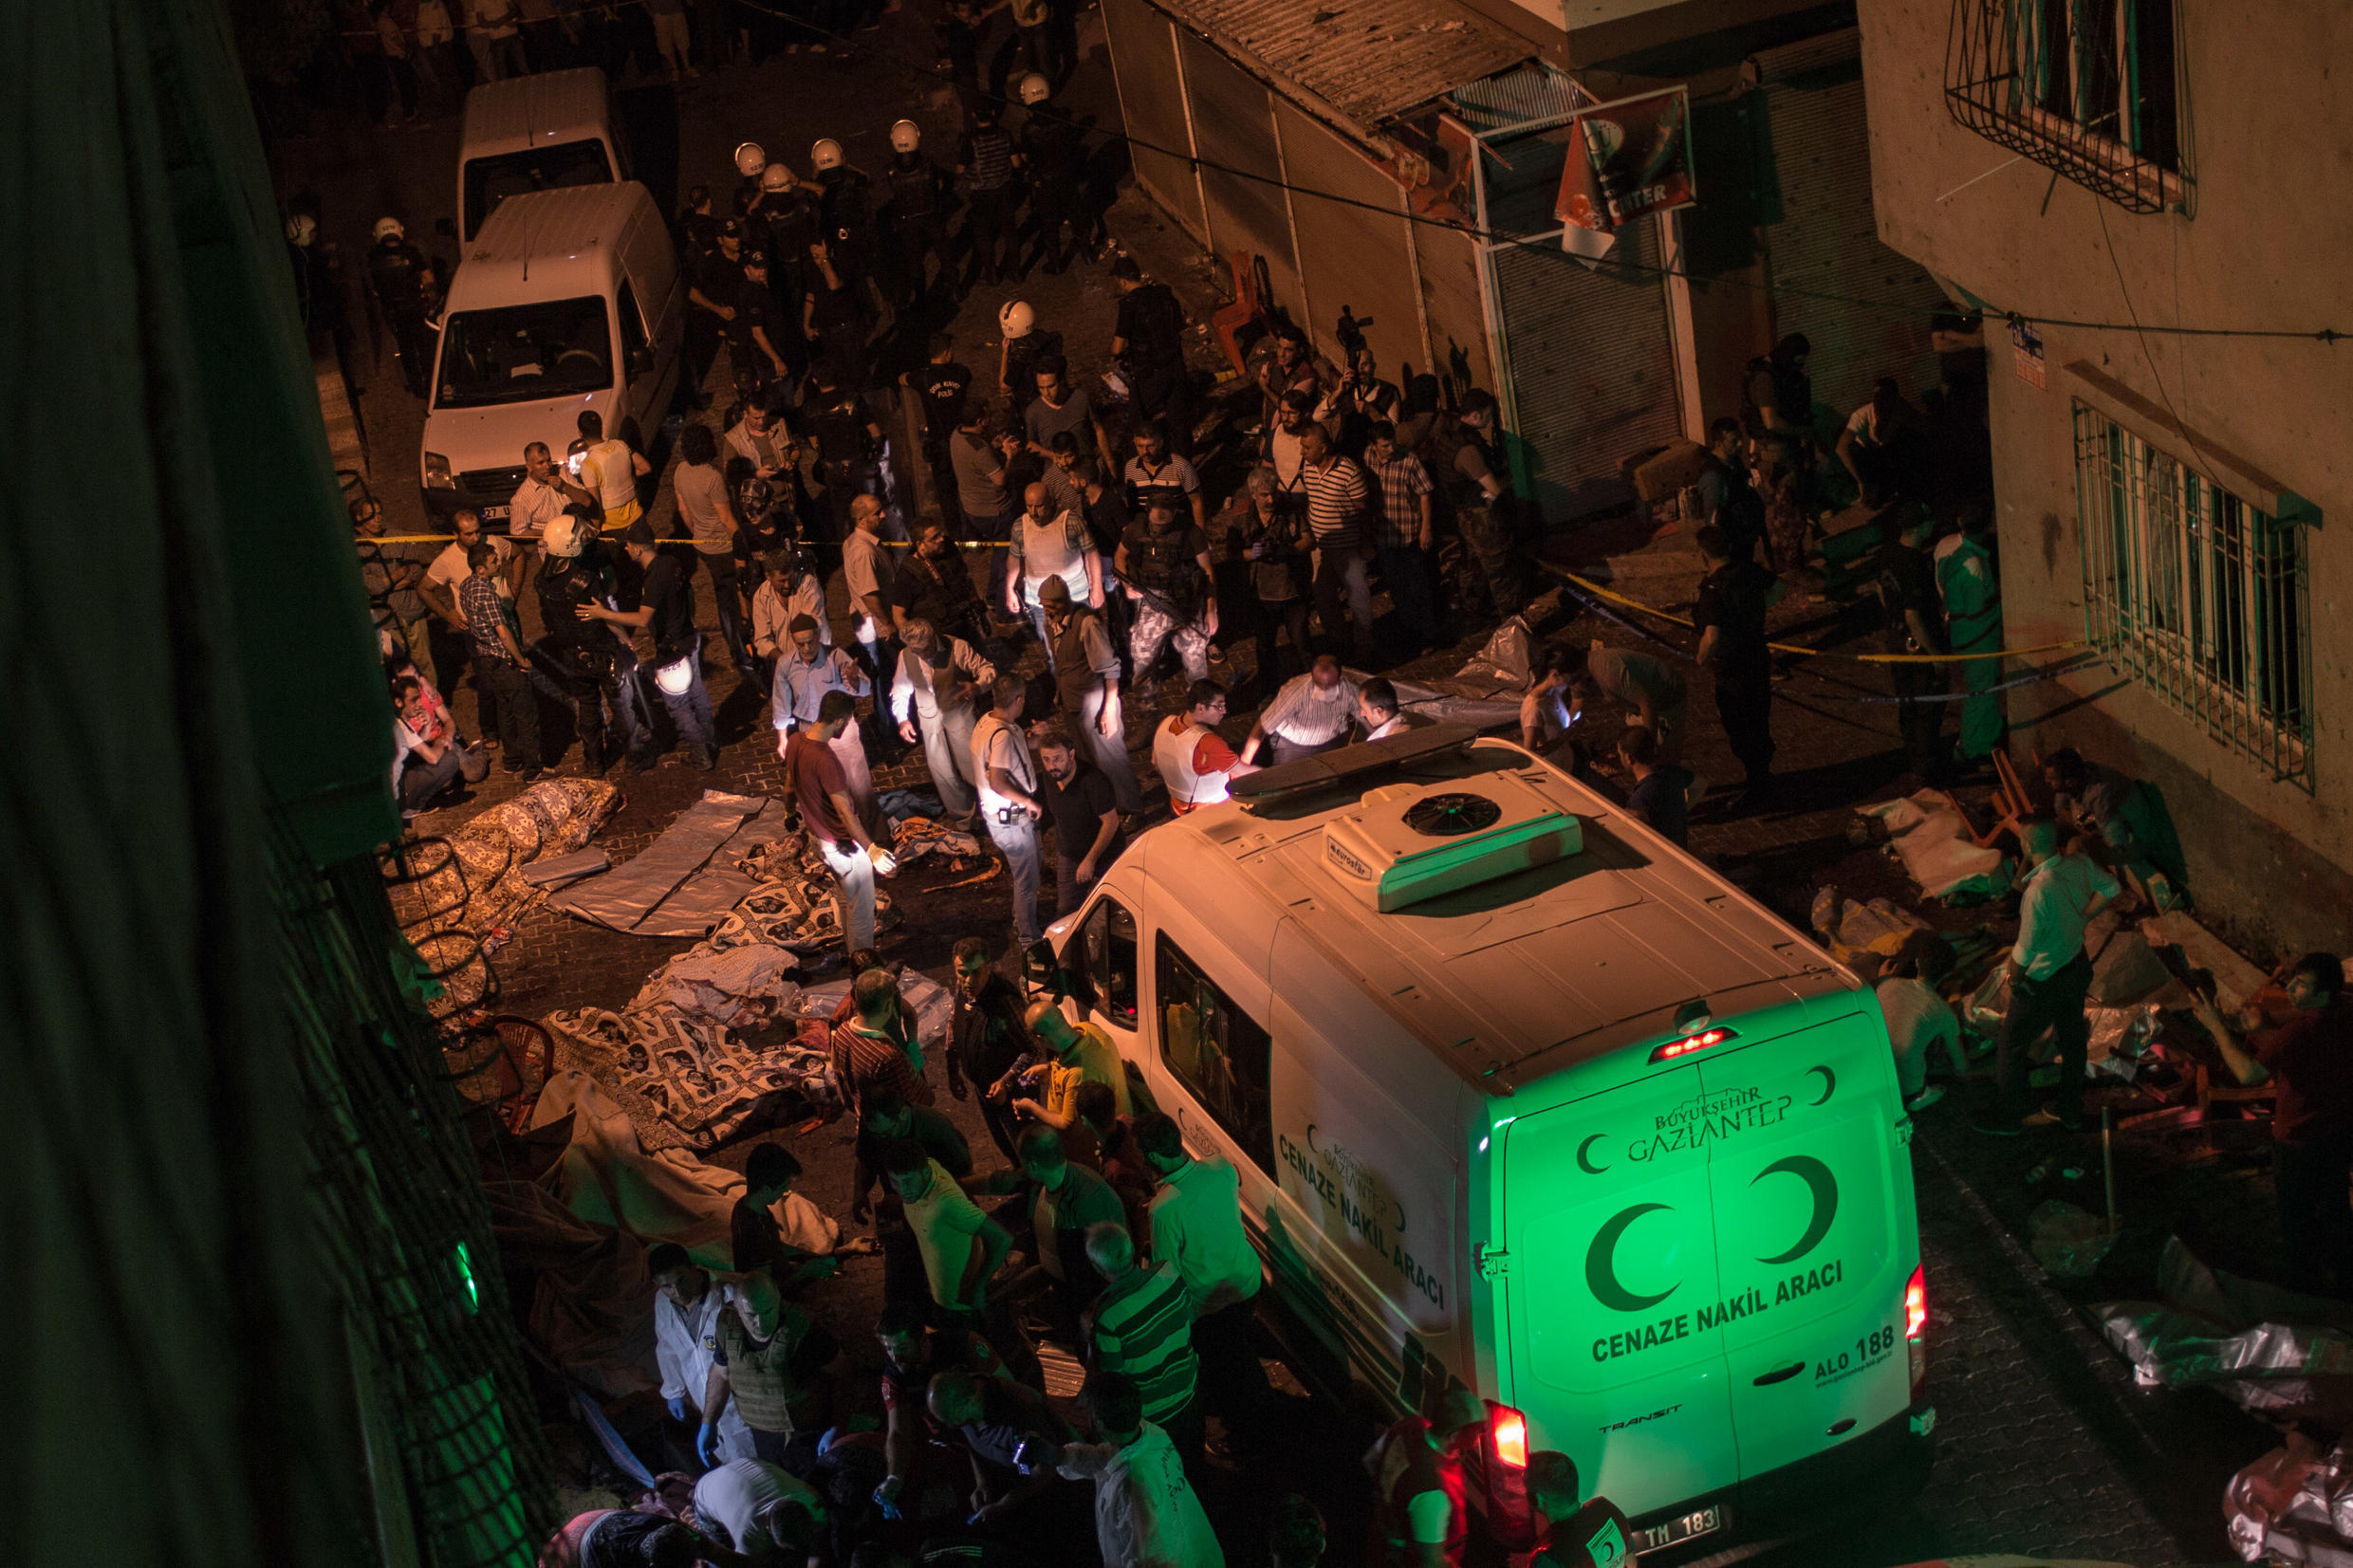 An ambulance arriving in Gazantiep, Turkey on 20 August 2016, after a bombing that killed 54.